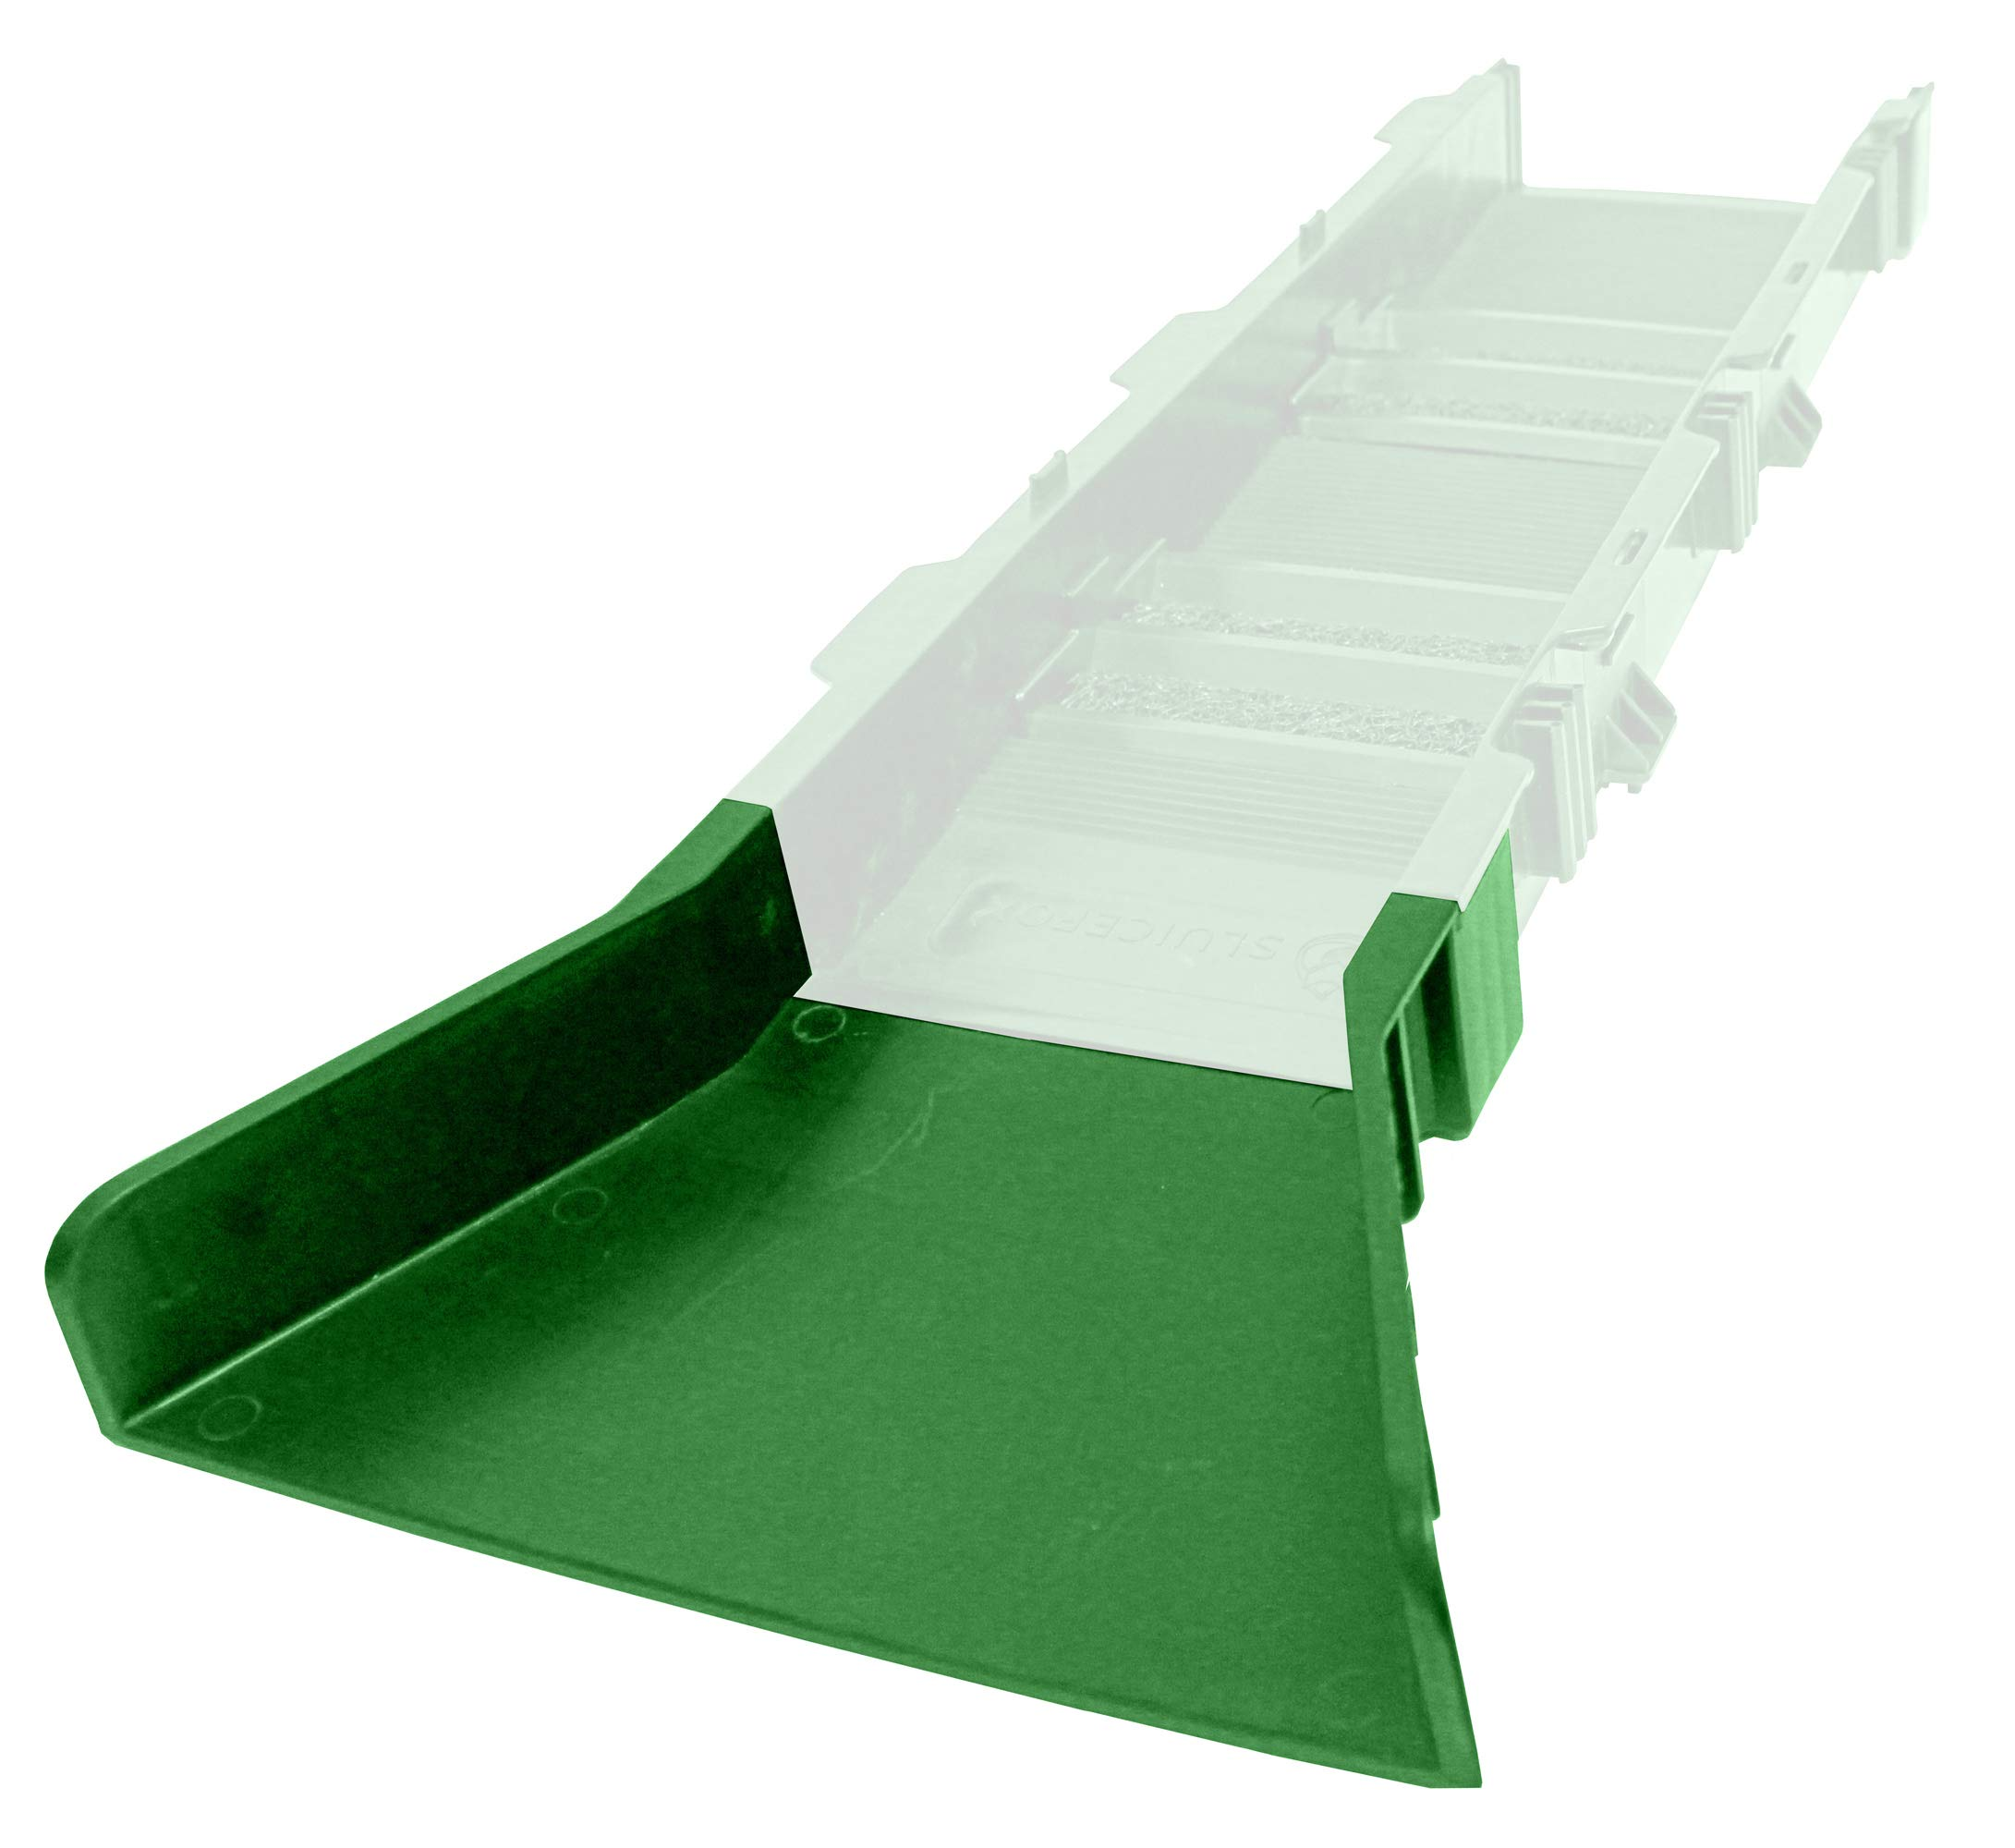 Sluice Fox Flare Only-Green for Portable Modular Sluice Box Gold Panning Dredge by Sluice Fox (Image #2)